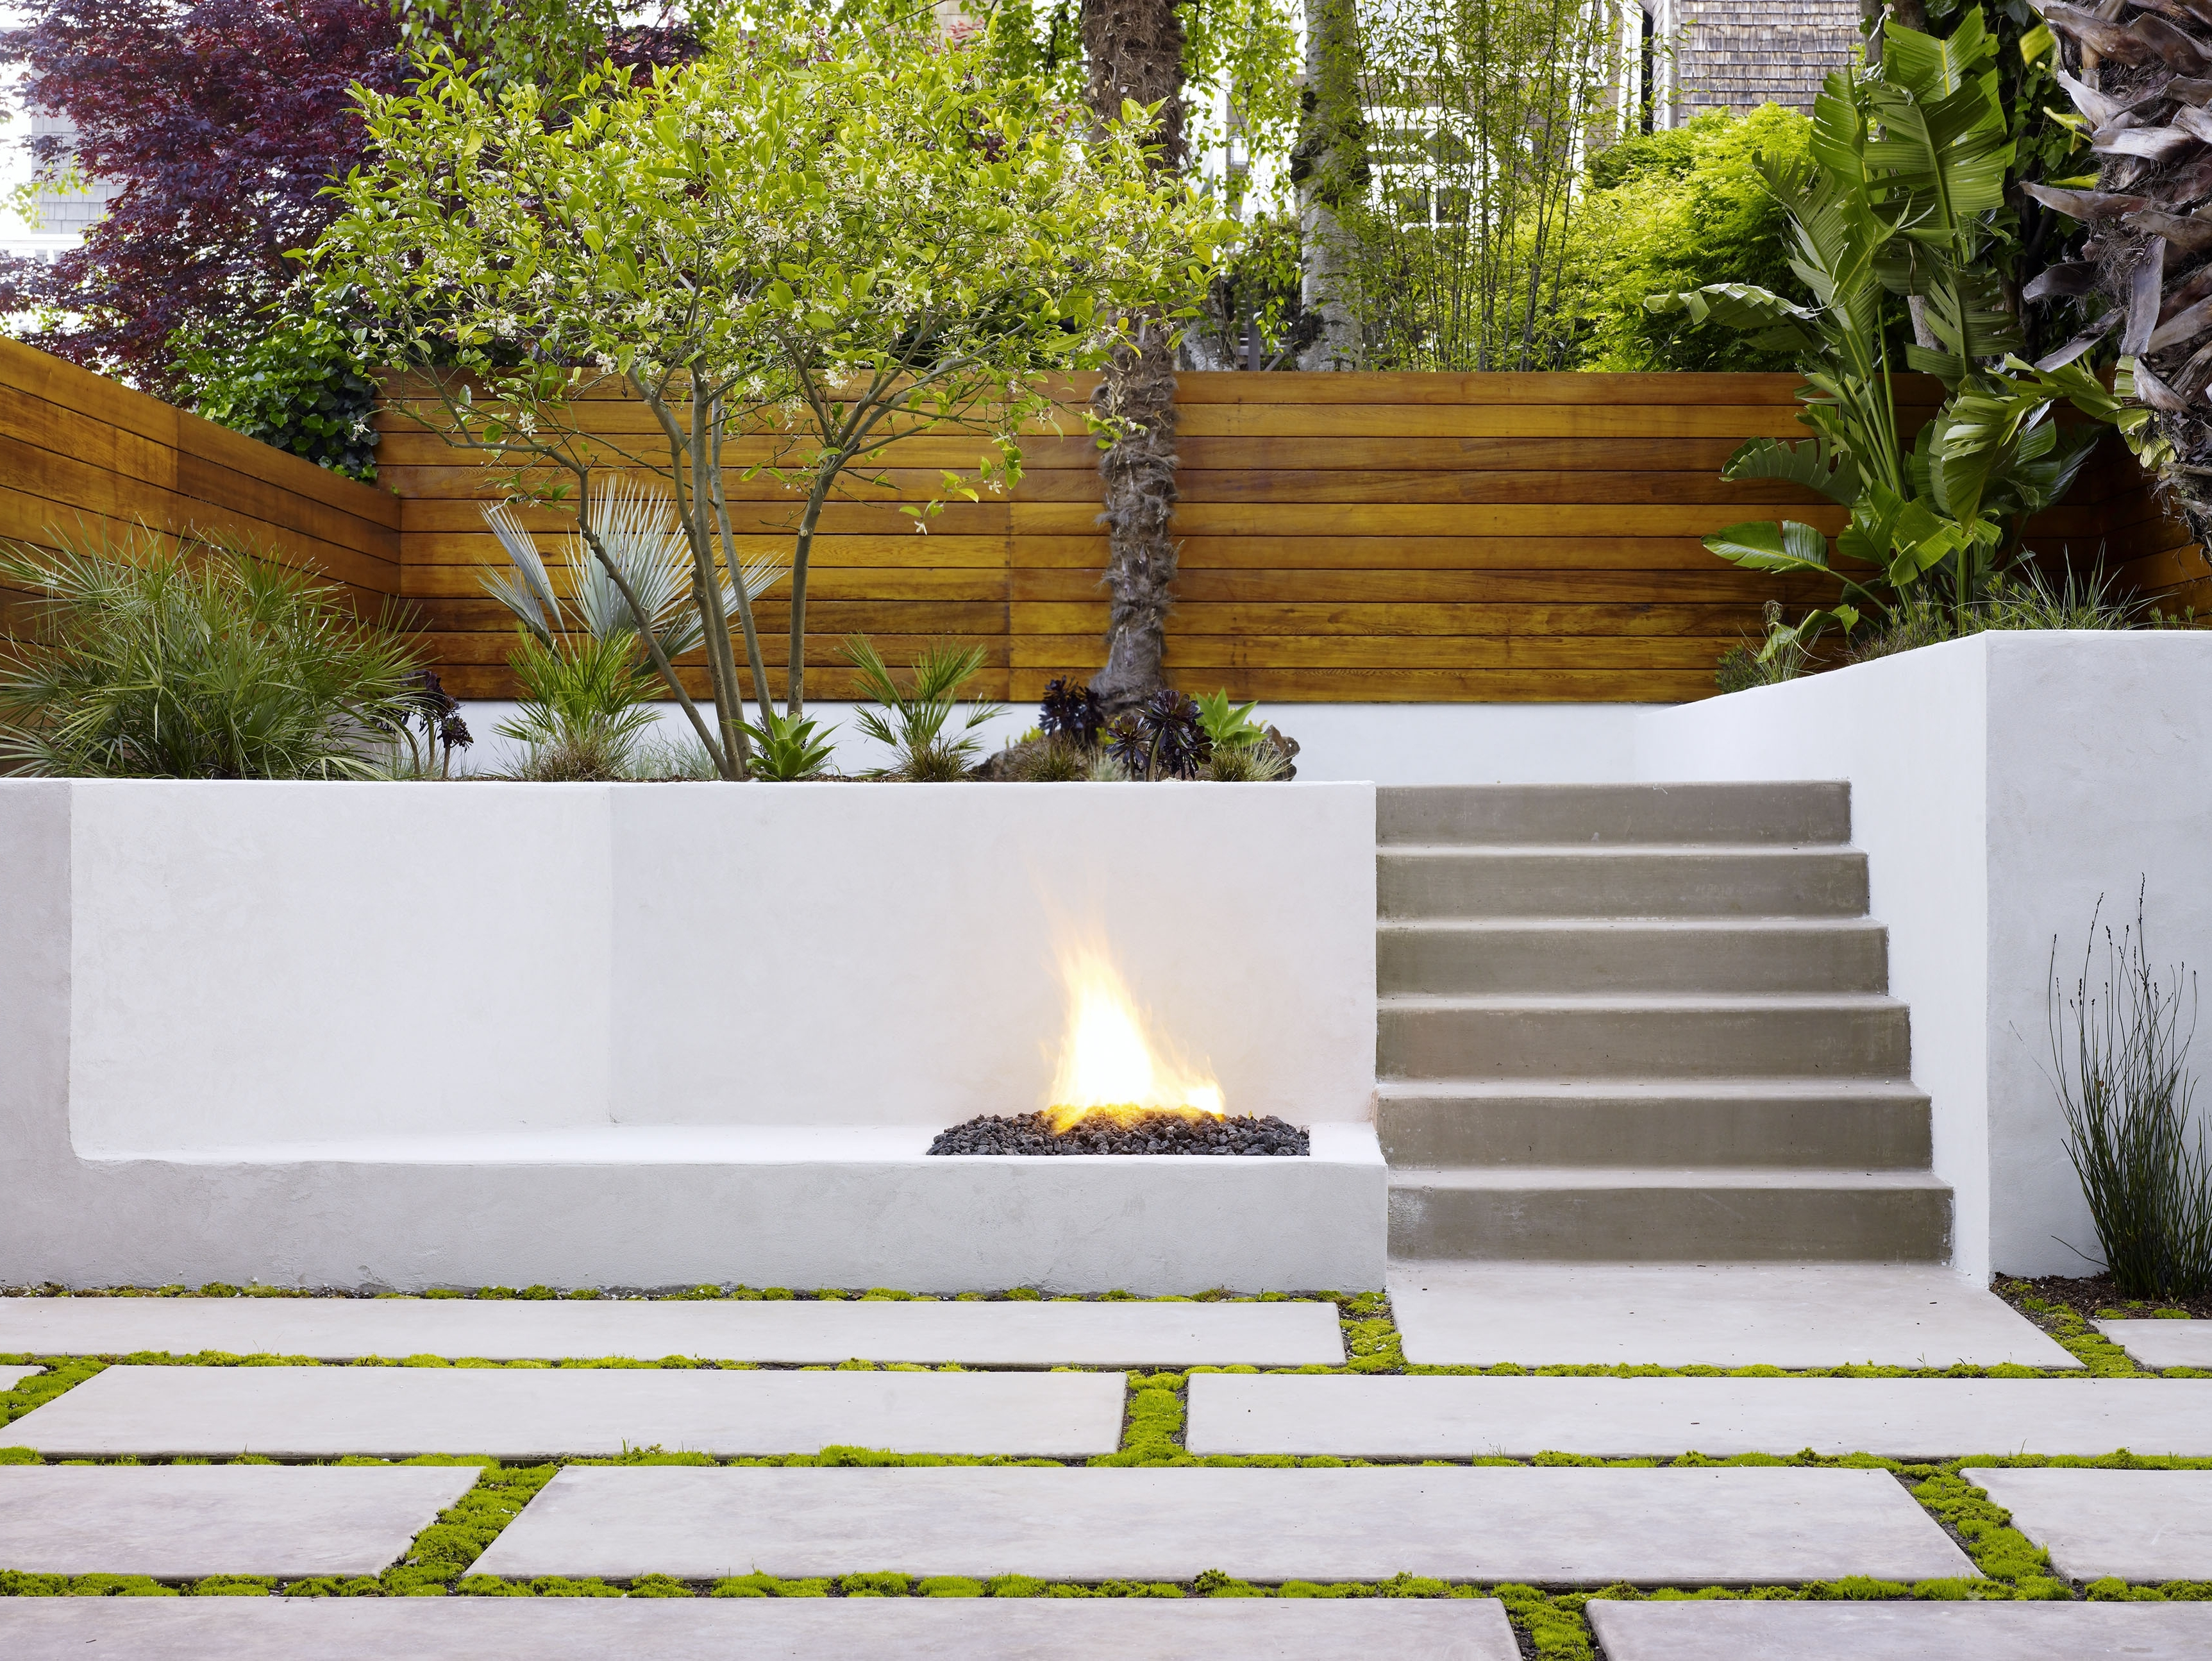 2018 Concrete Retaining Wall Ideas For Attractive Garden Landscape Design Intended For Outdoor Retaining Wall Lighting (View 17 of 20)